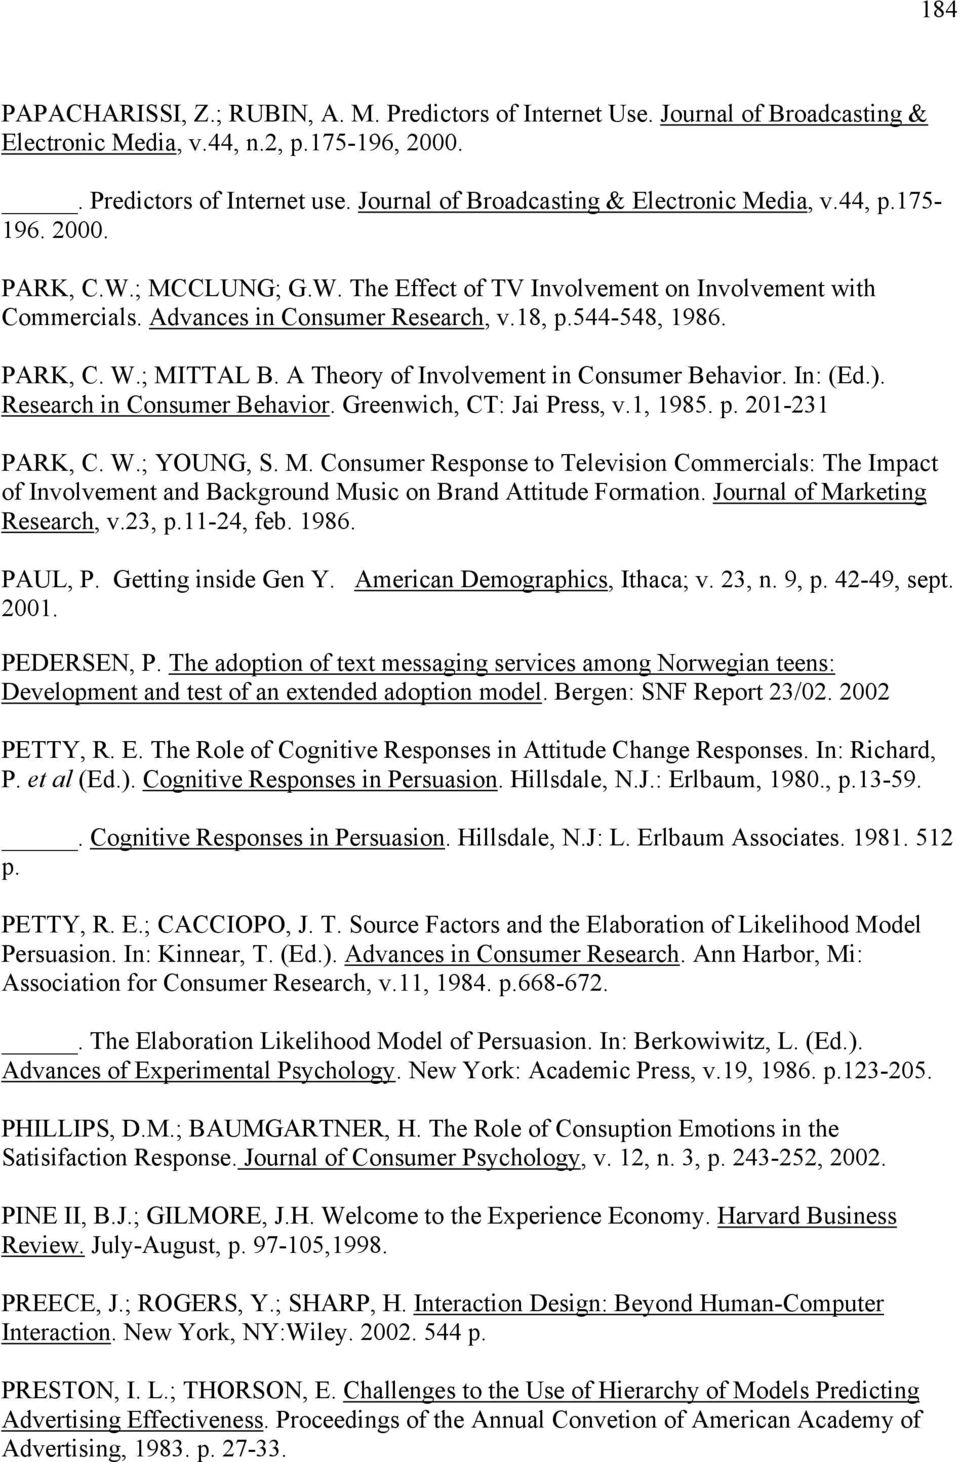 544-548, 1986. PARK, C. W.; MITTAL B. A Theory of Involvement in Consumer Behavior. In: (Ed.). Research in Consumer Behavior. Greenwich, CT: Jai Press, v.1, 1985. p. 201-231 PARK, C. W.; YOUNG, S. M. Consumer Response to Television Commercials: The Impact of Involvement and Background Music on Brand Attitude Formation.